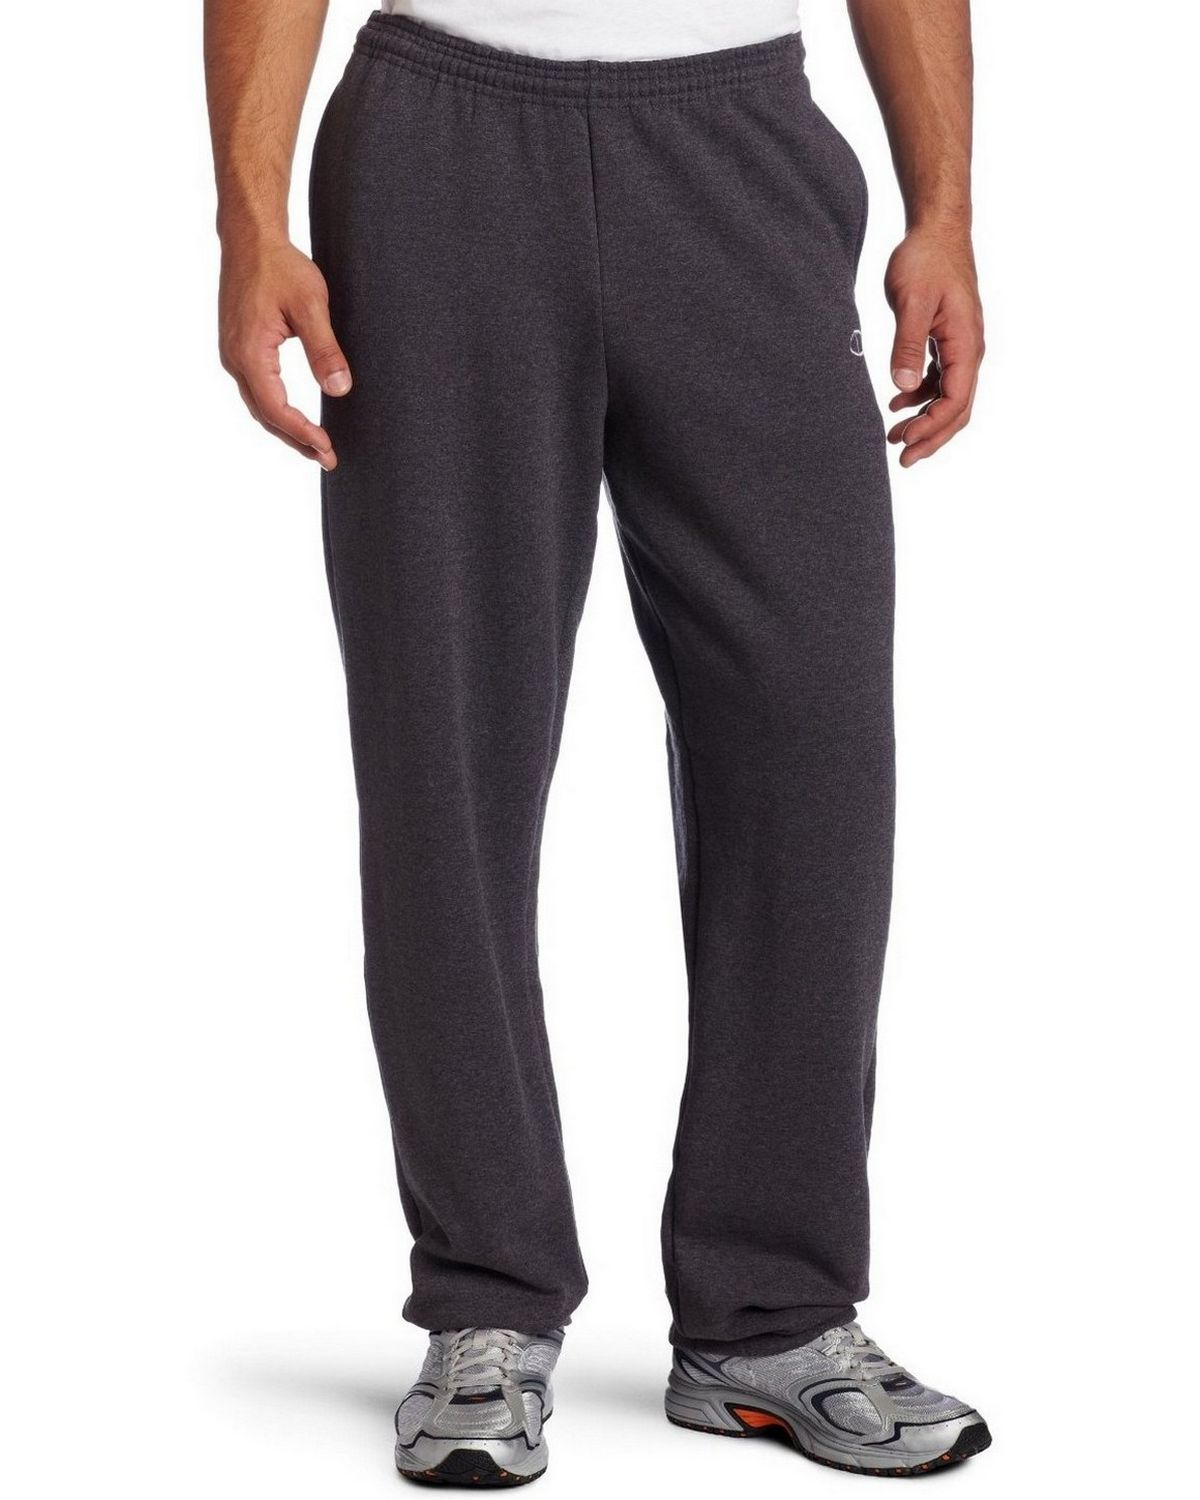 Champion P2519 Eco Relaxed Band Pant - Granite Heather - XXL P2519